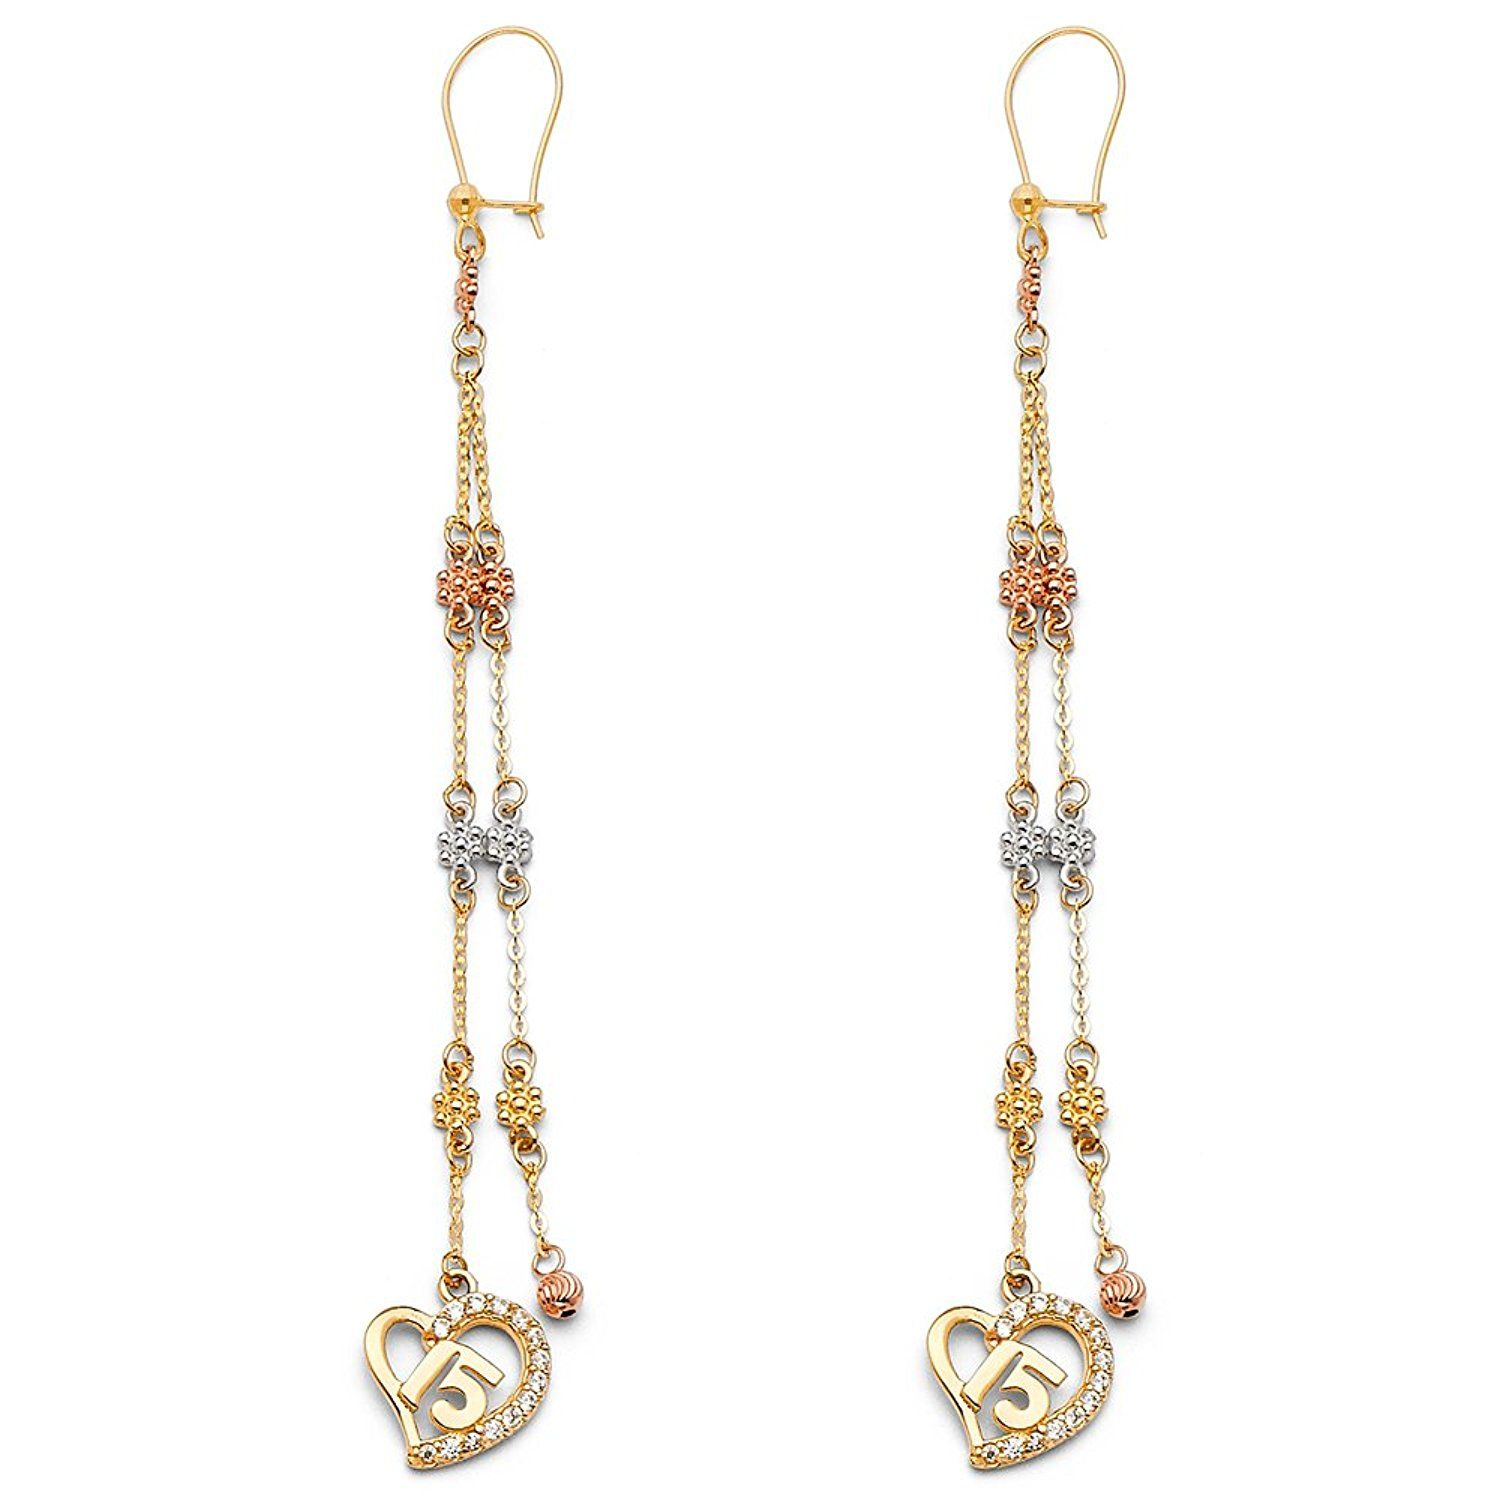 14K Two Tone Gold Perforated Ball Hanging Shepherds Hook Earrings Ioka